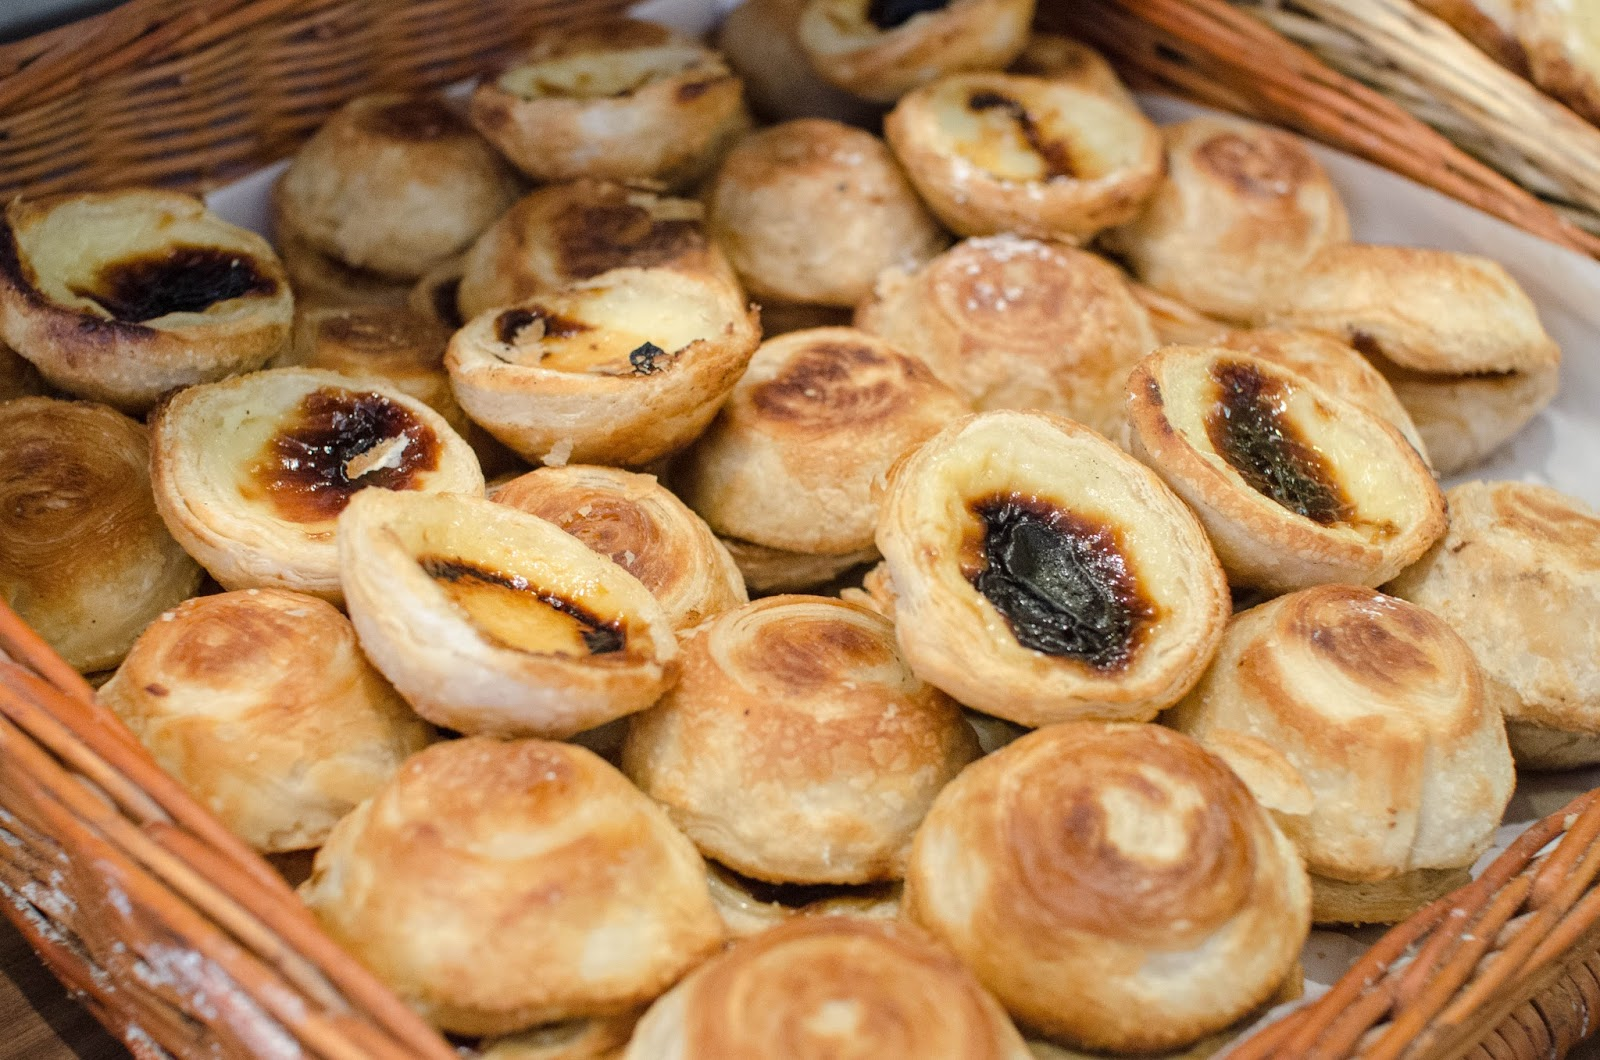 Portuguese bakery Nata & Co opens new Cardiff store tomorrow ...